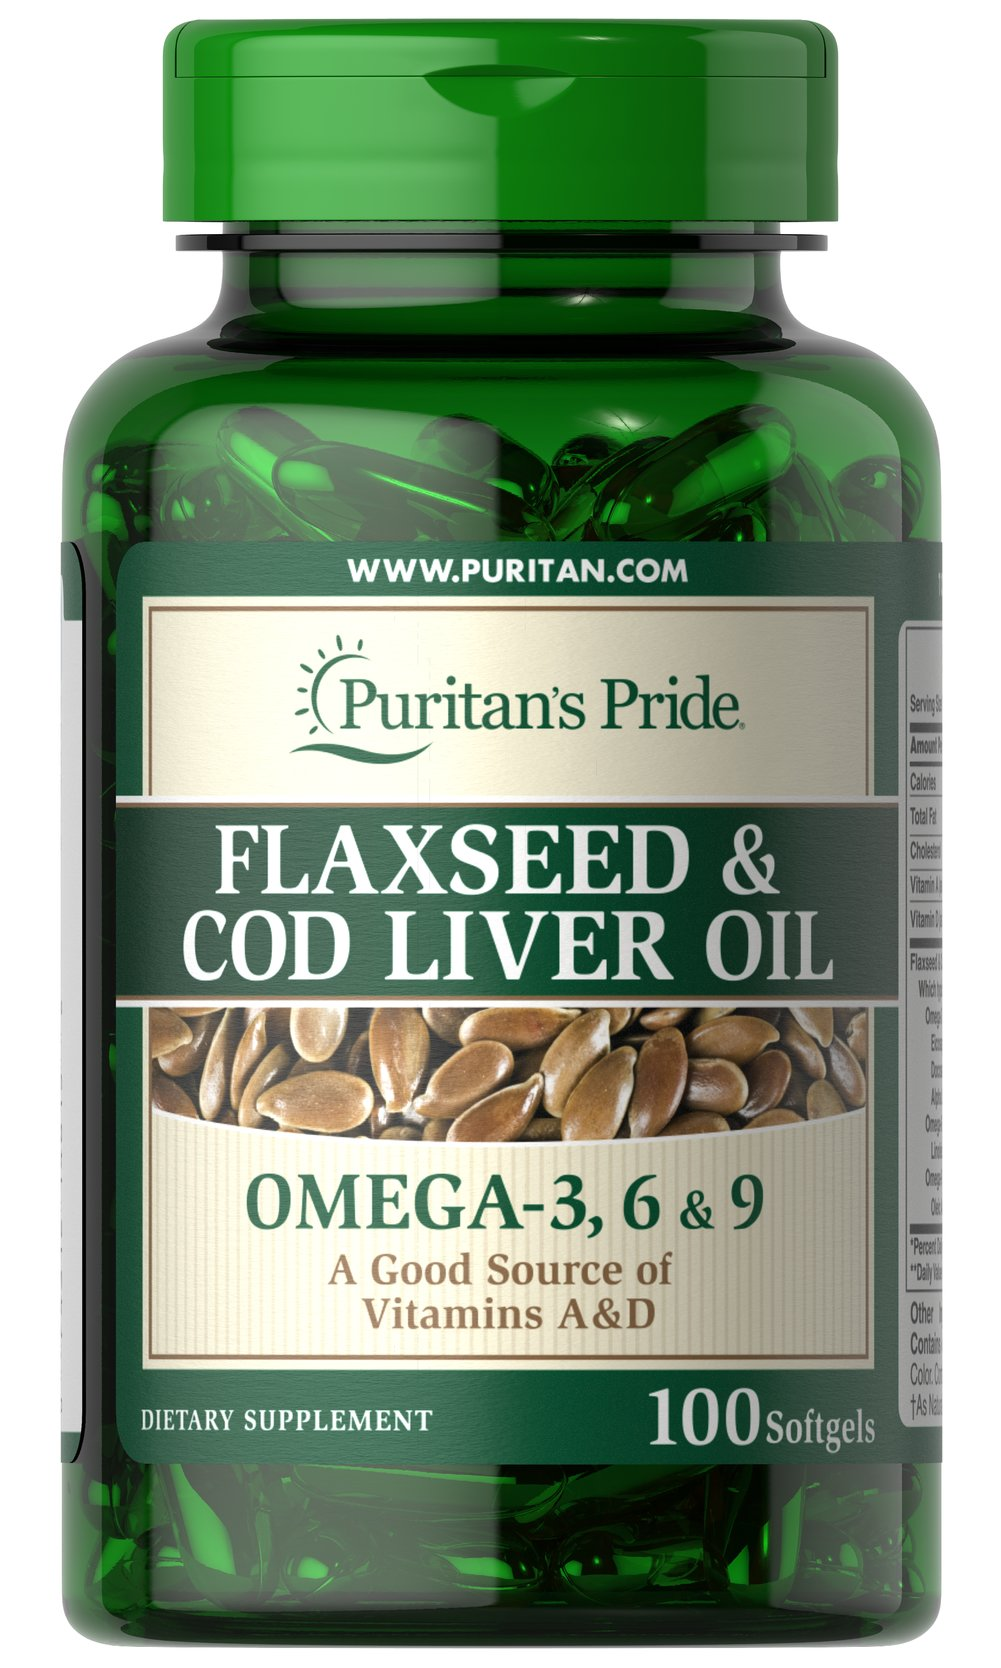 Flaxseed & Cod Liver Oil 1000 mg Omega 3, 6 & 9 <p>Both <strong>flaxseed and cod liver oil</strong> are rich in essential <em>fatty acids</em>, which may play an important role in the proper functioning of the cardiovascular system.  Each softgel provides (500 mg) of cold-pressed linseed oil, plus enough cod liver oil to supply (1250 I.U.) of Vitamin A and (125 I.U.) of Vitamin D.</p> 100 Softgels 1000 mg $14.99